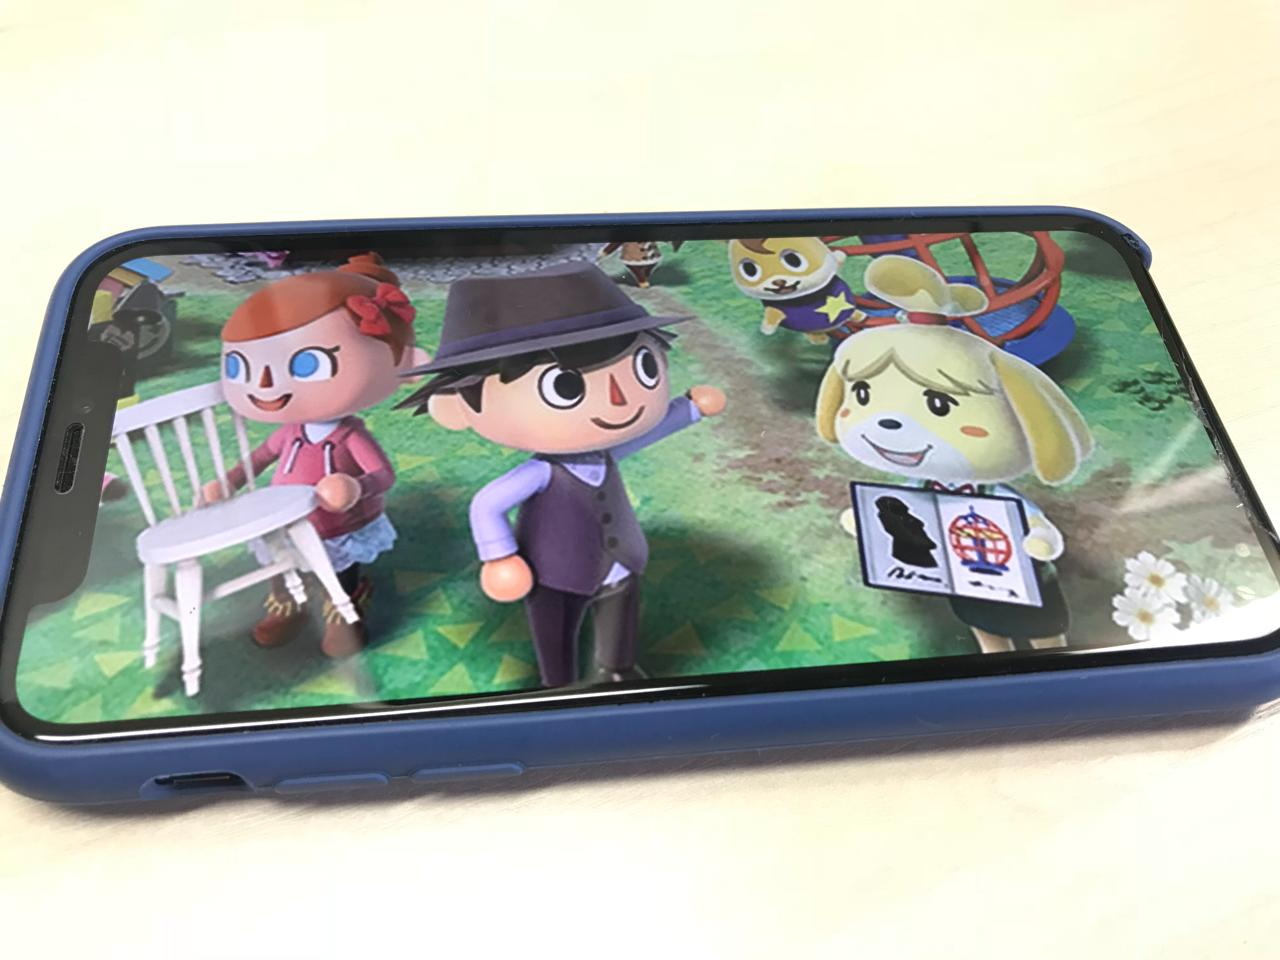 Faça o download do jogo Animal Crossing: Pocket Camp e divirta-se com este game super divertido